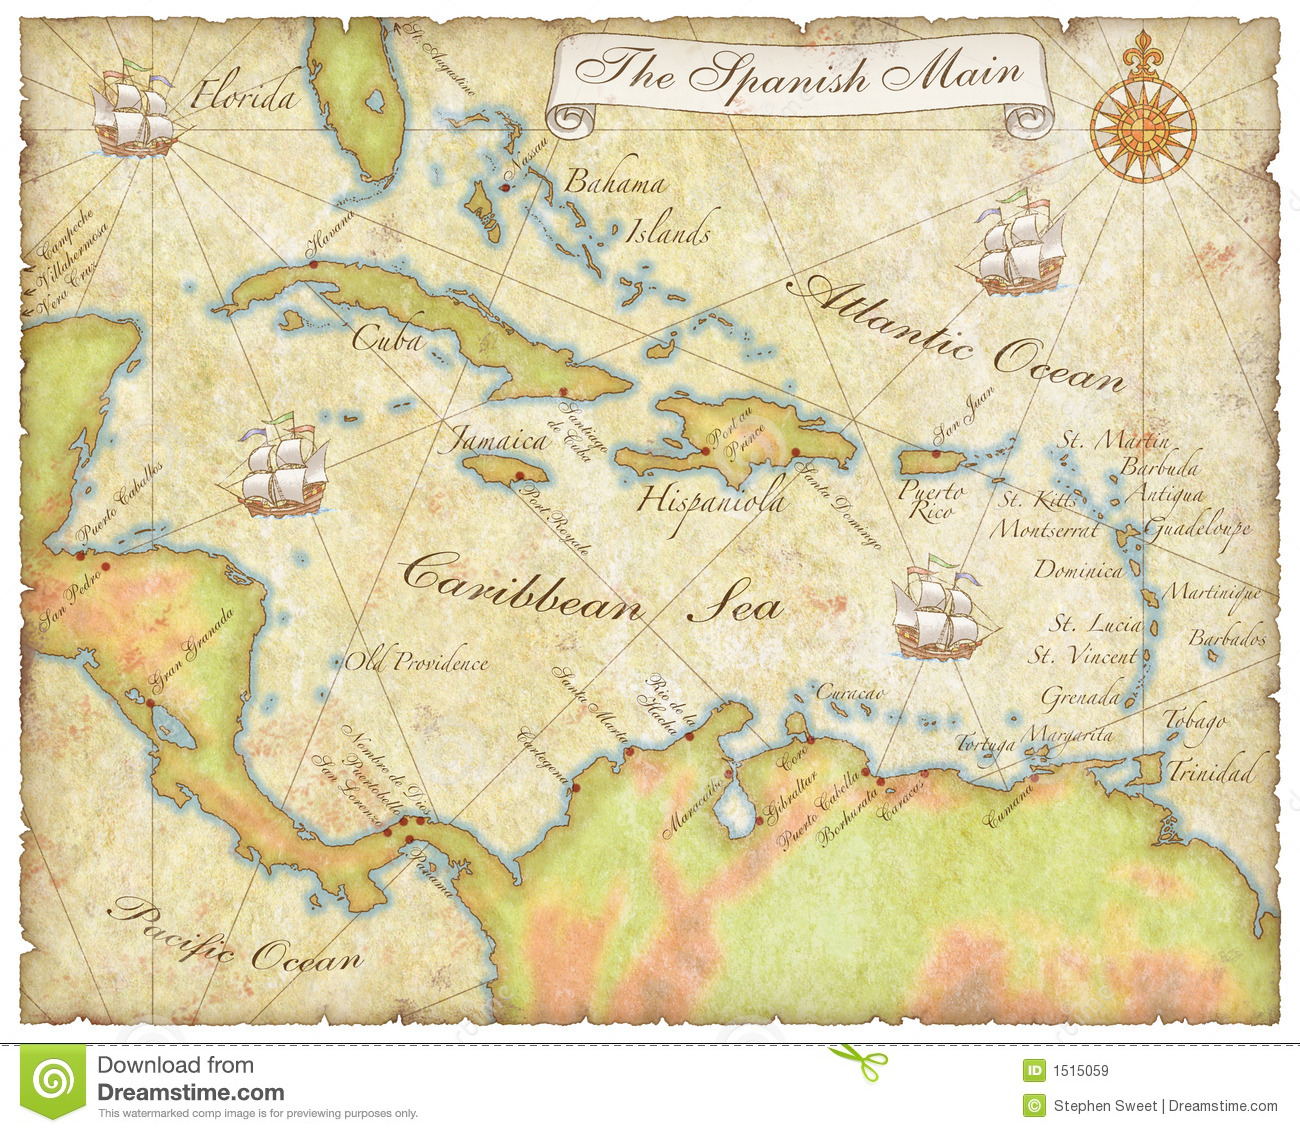 Spanish Main Map stock illustration. Illustration of cutlass - 1515059